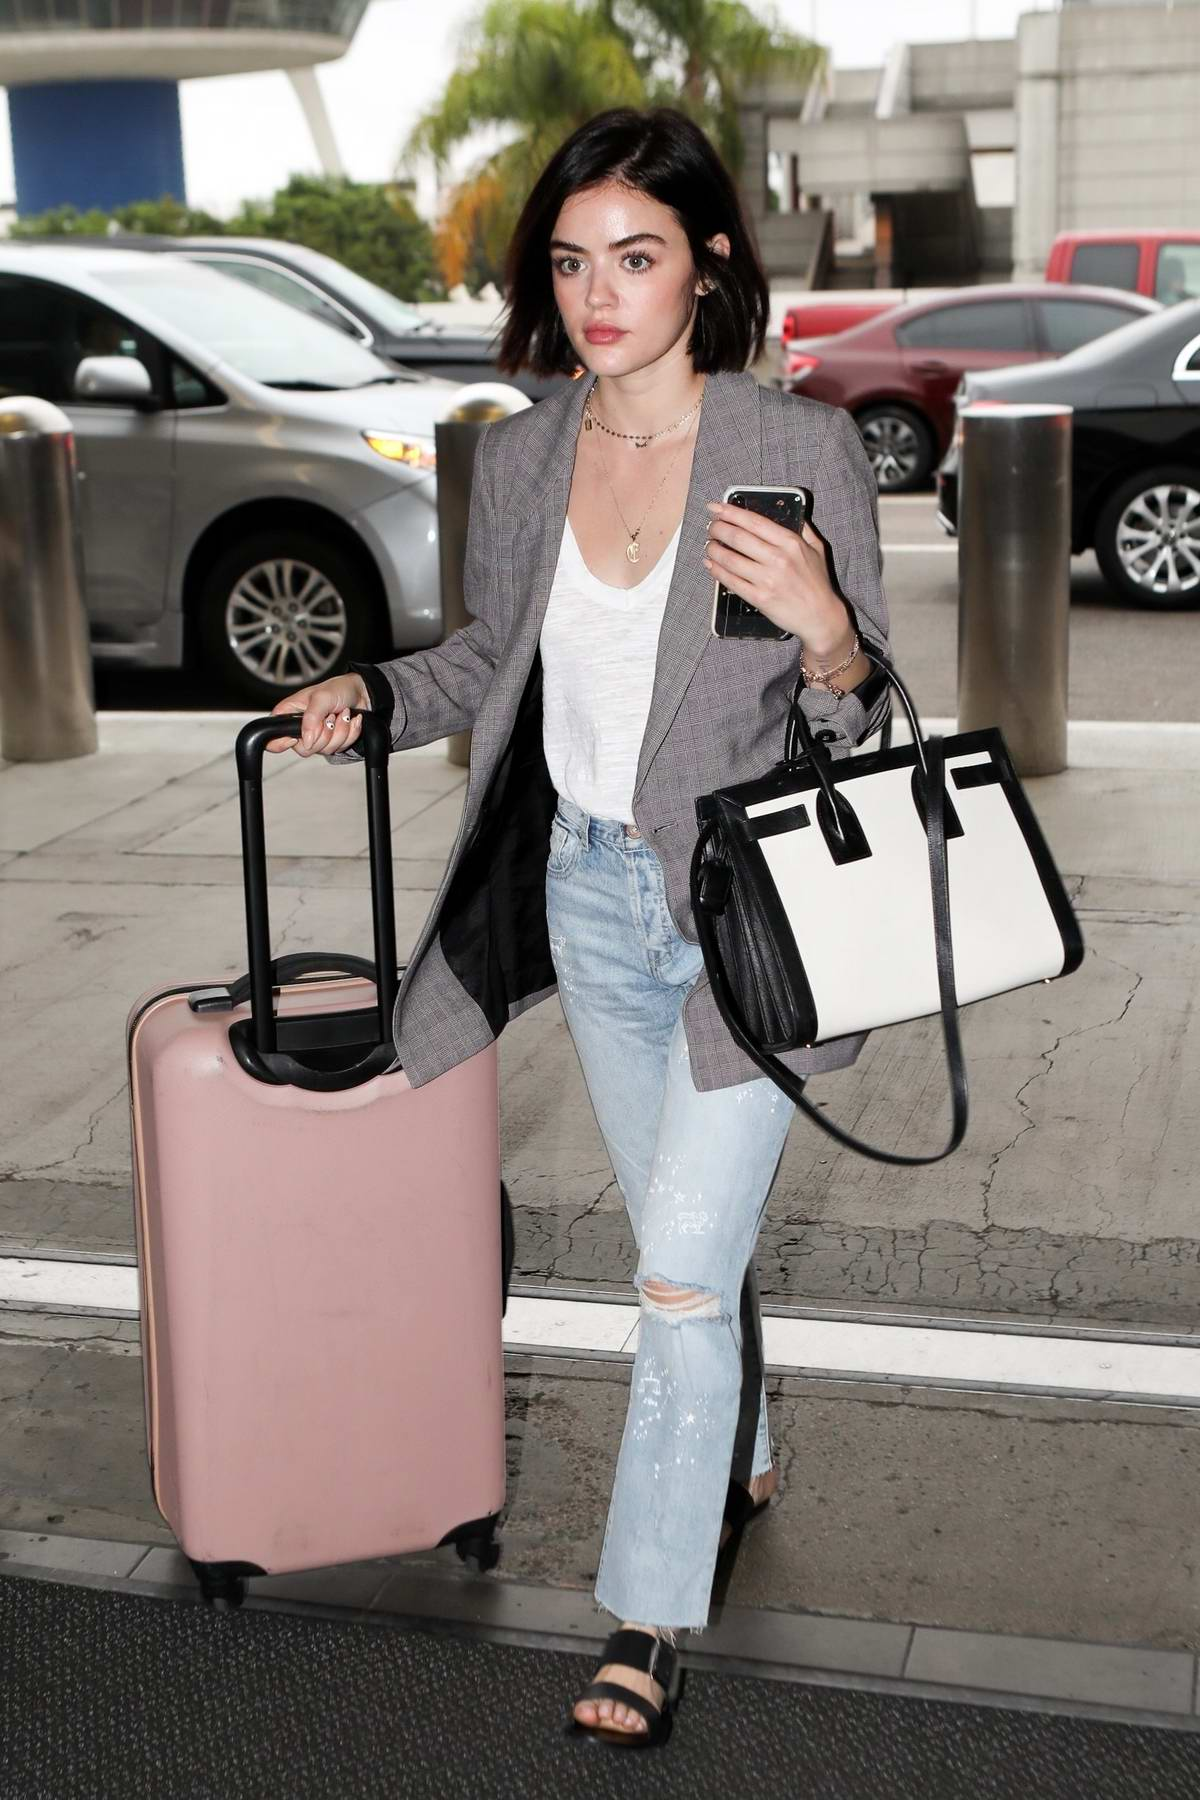 Lucy Hale spotted in a grey blazer and jeans as as she arrives to catch a flight out of LAX in Los Angeles